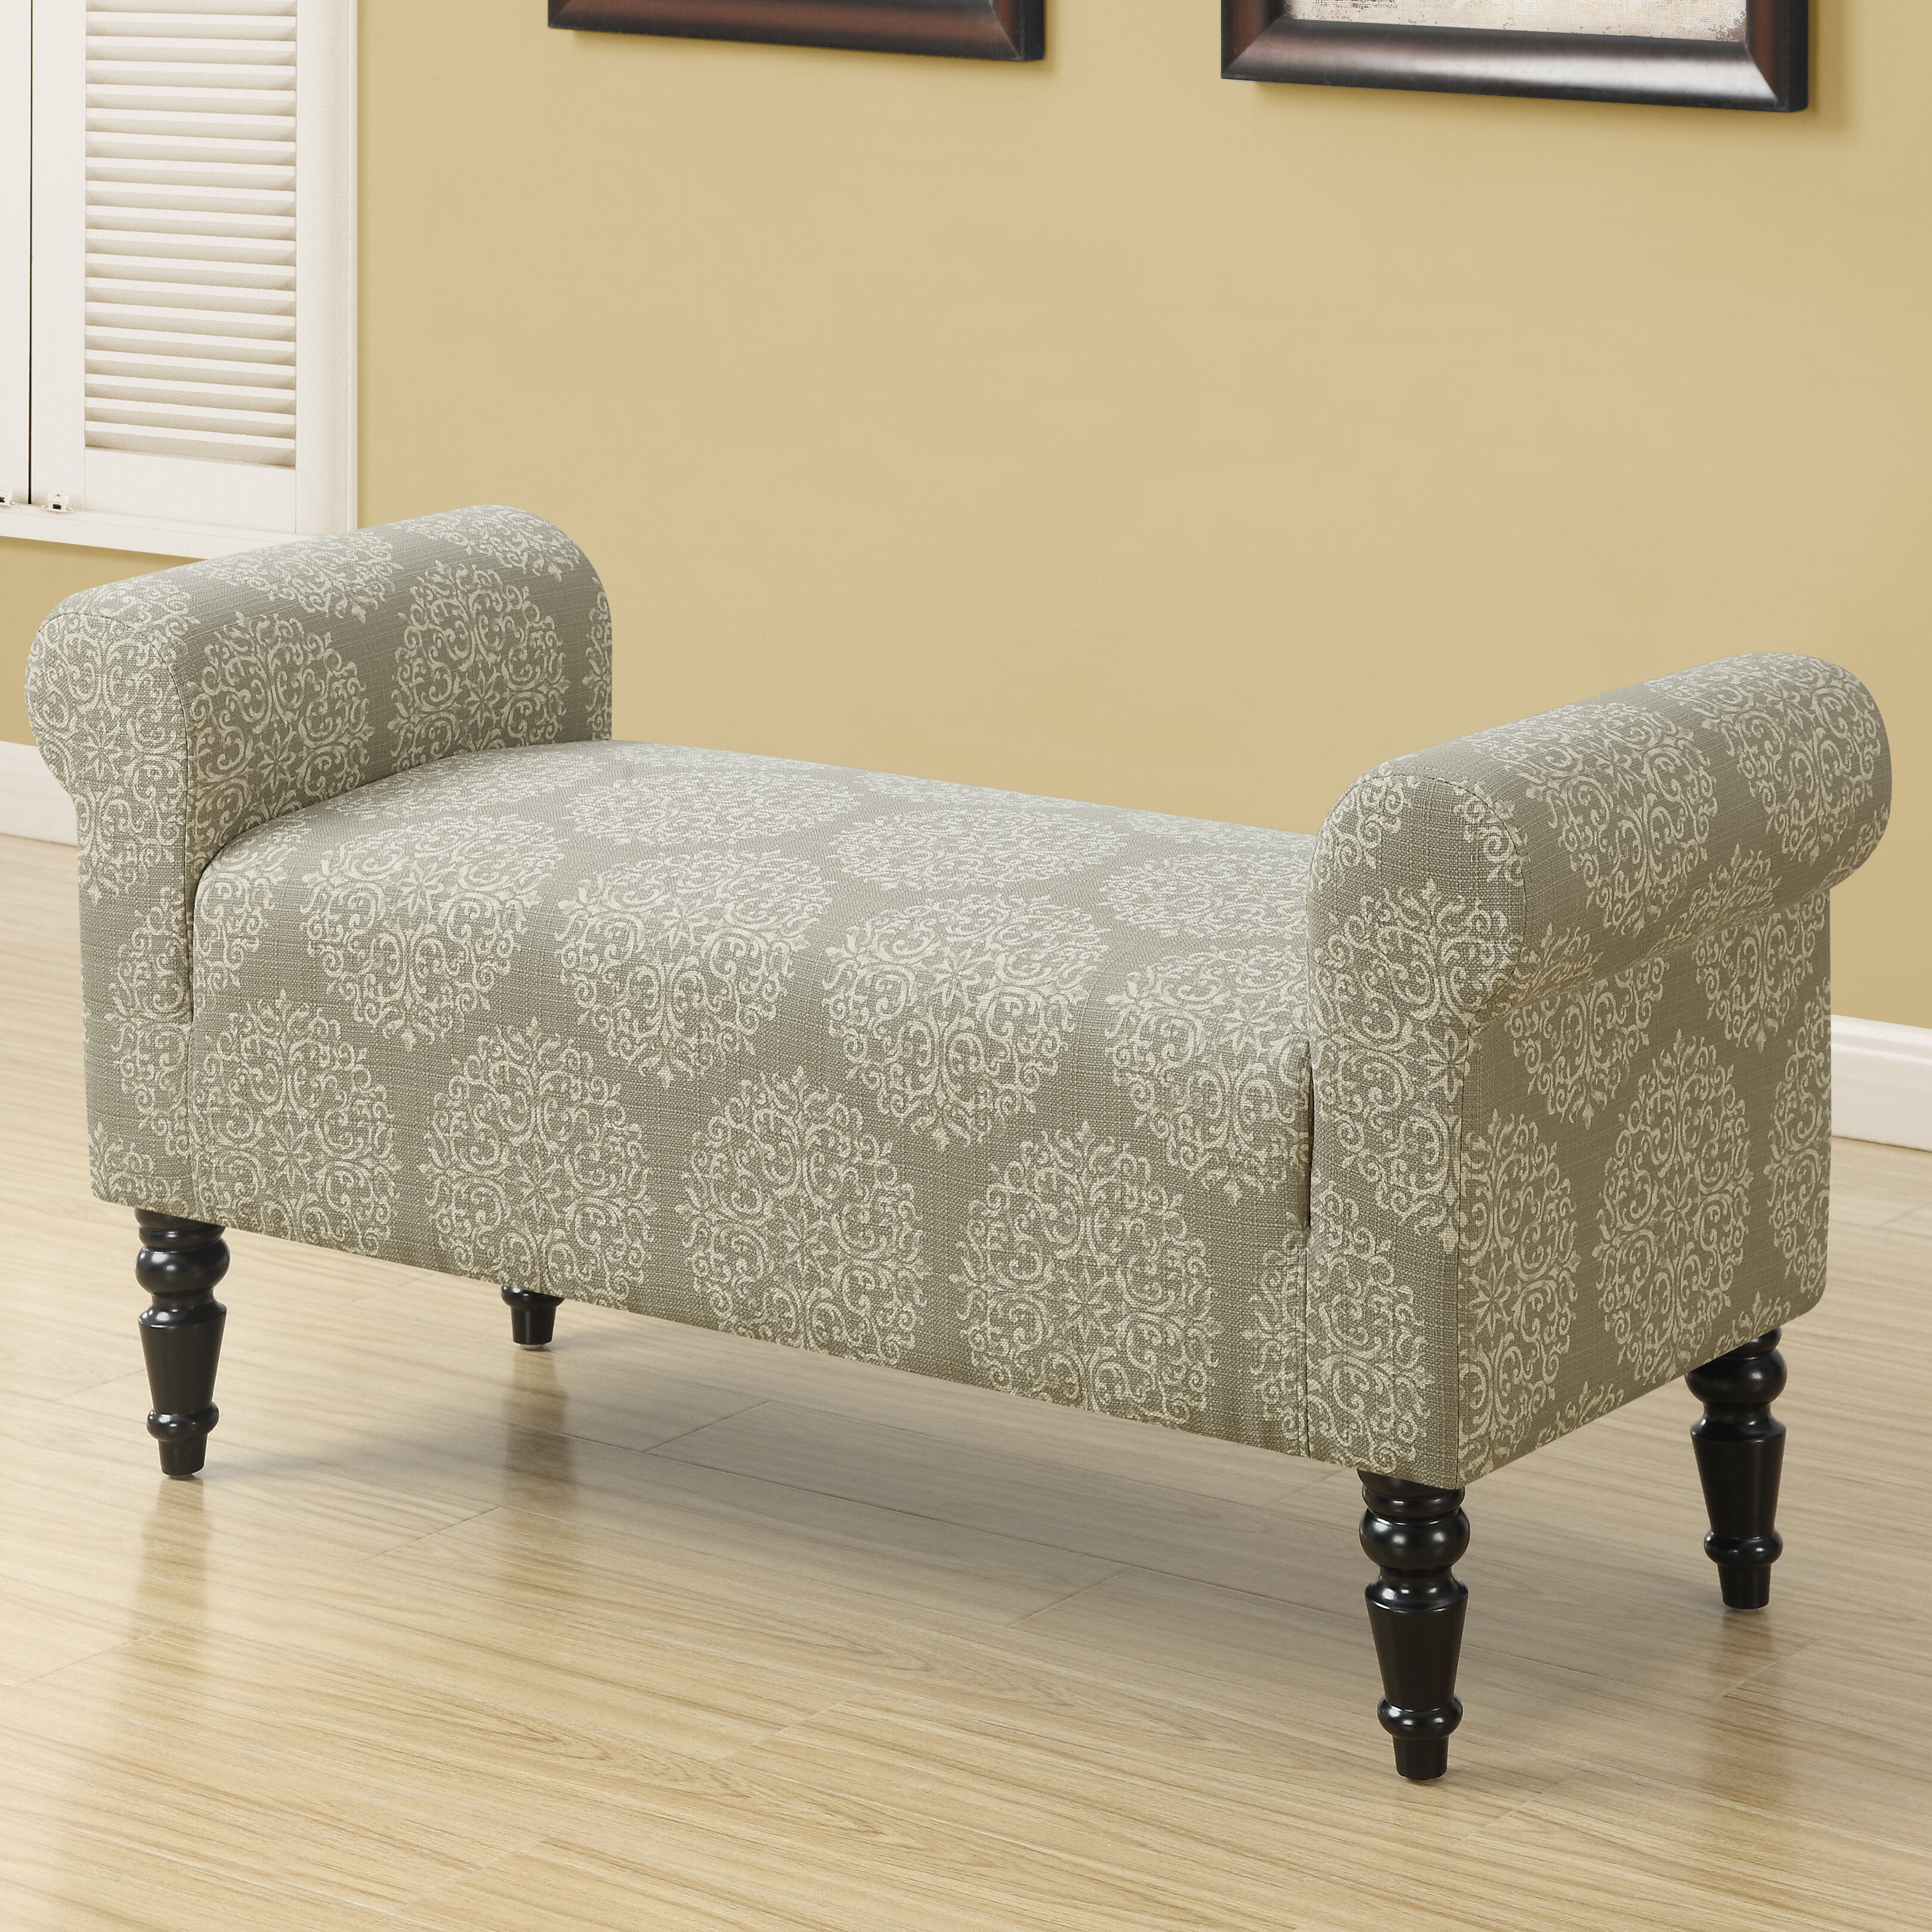 Monarch Specialties Inc. Taupe Fabric Bench & Reviews | Wayfair